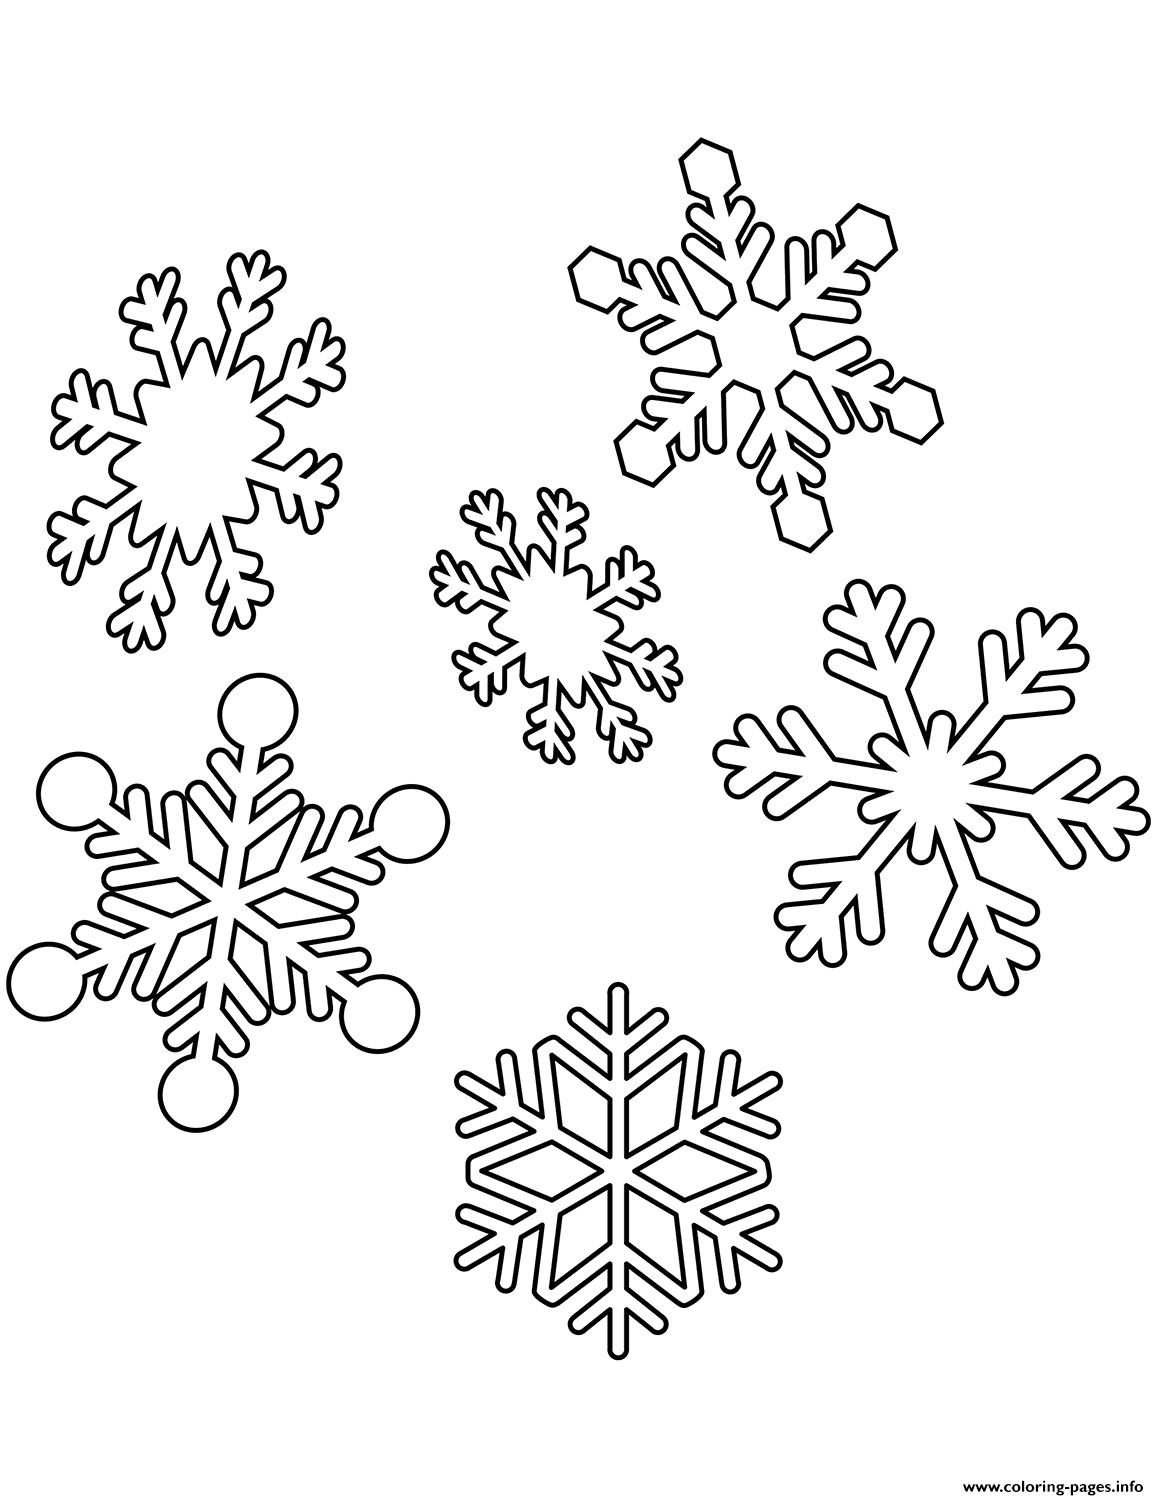 snowflake color page - snowflakes christmas coloring pages printable